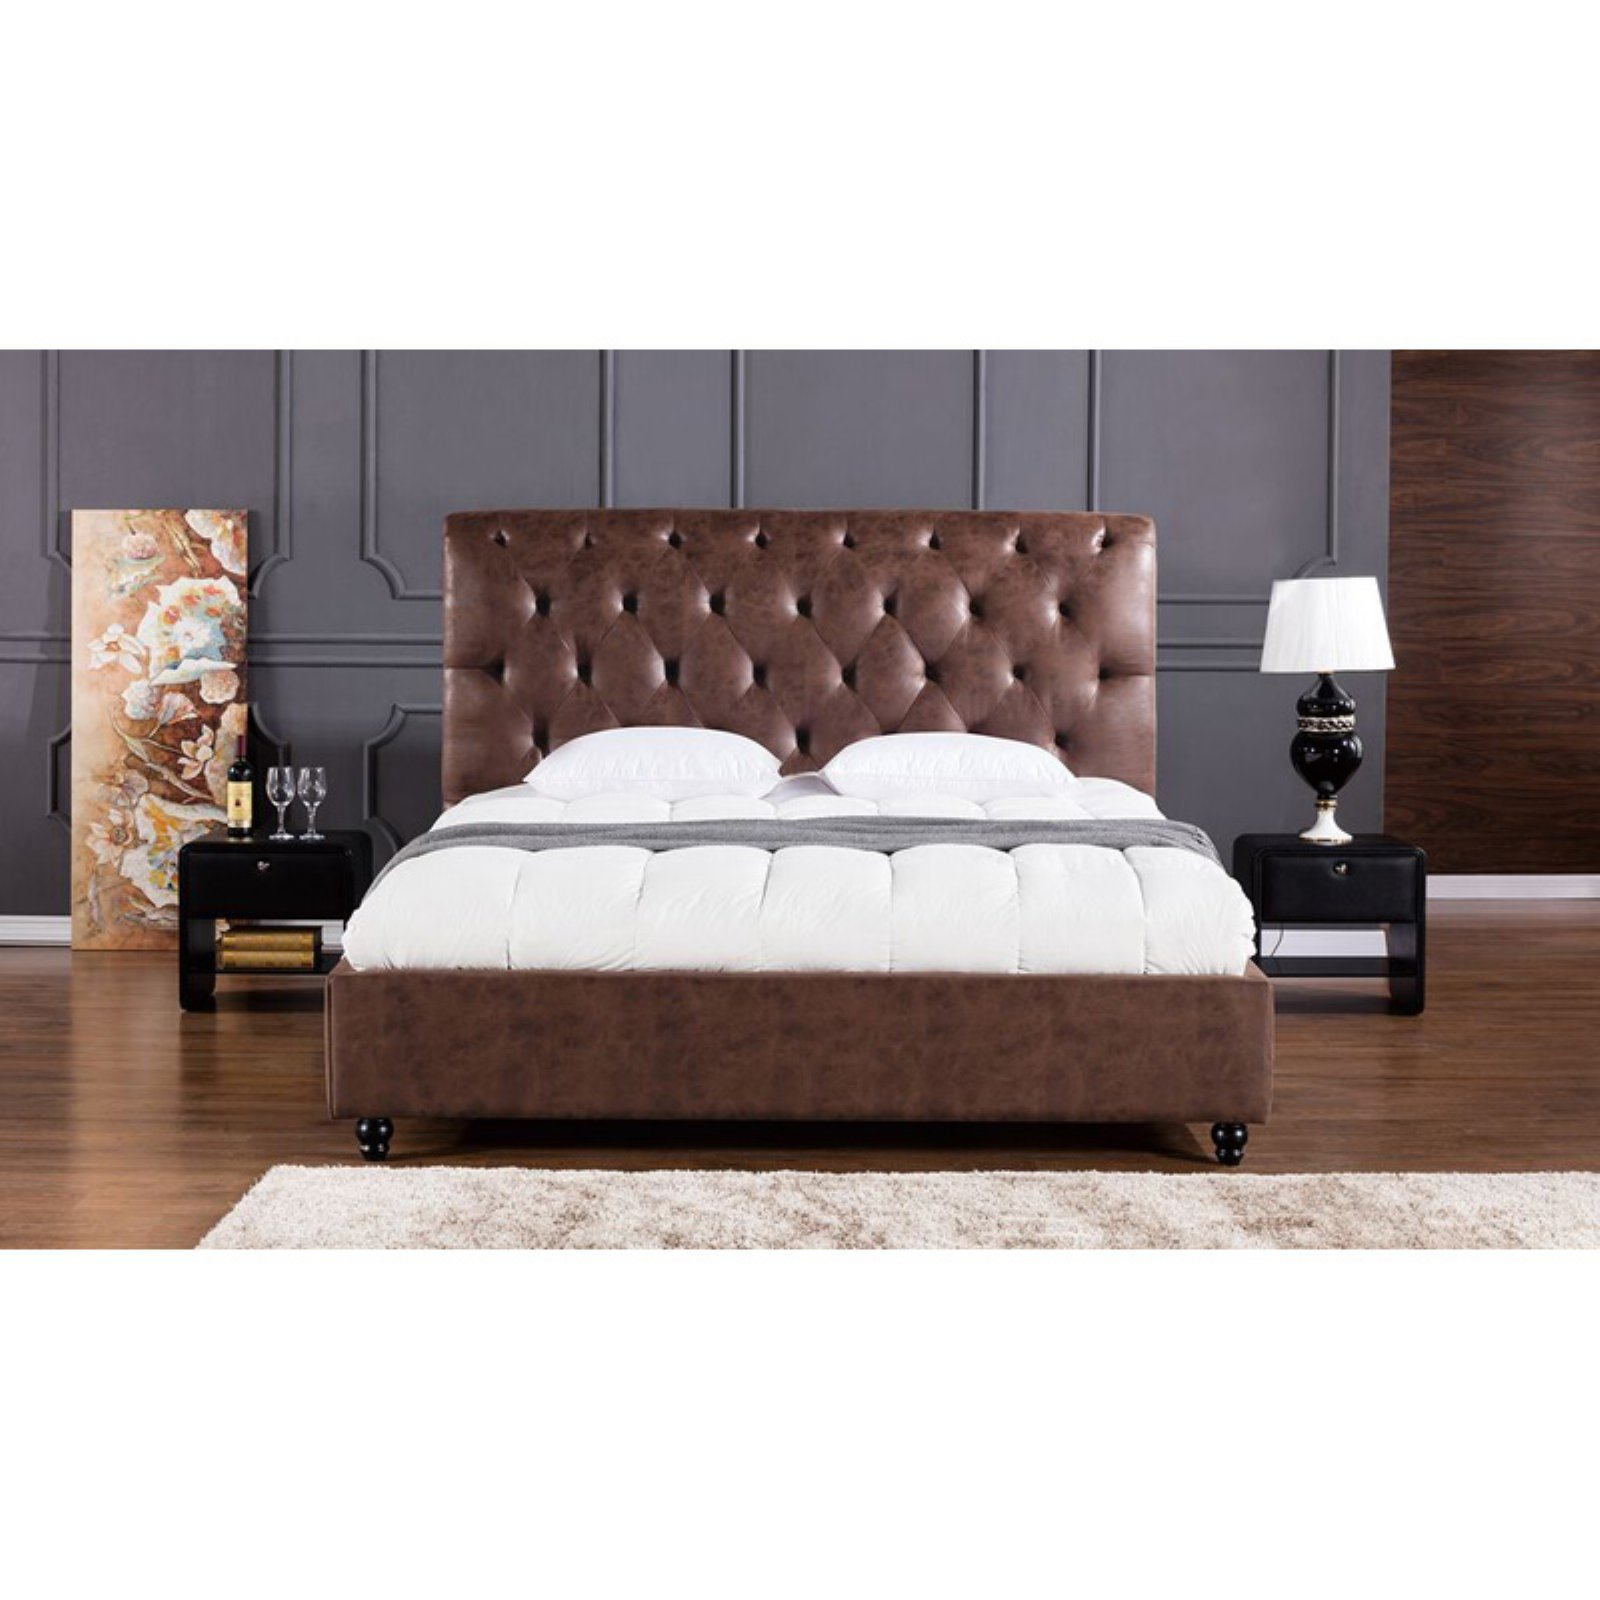 American Eagle Furniture Brooks Platform Bed with Tufted Headboard